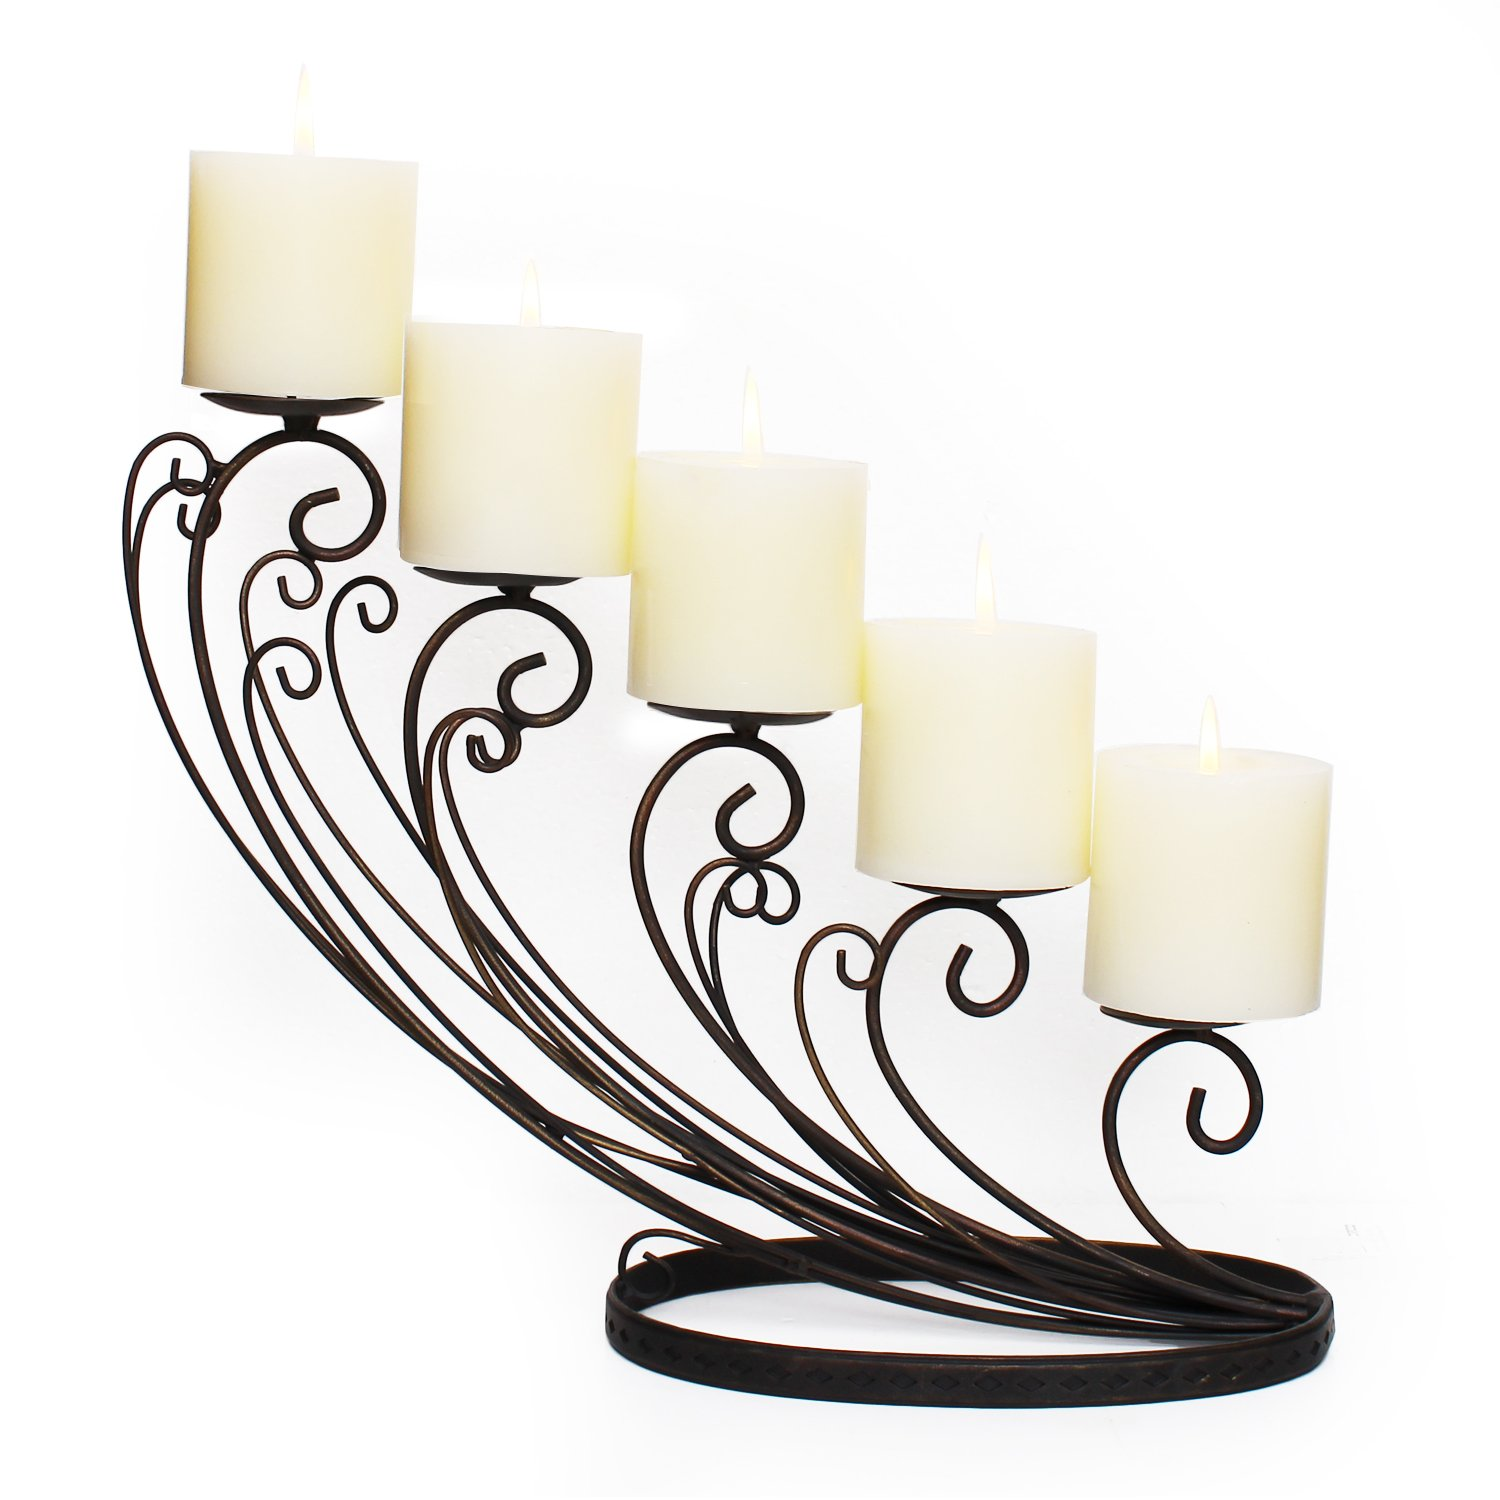 Homebeez Decorative Iron Table Candle Holder (Holds 5 Pillar Candles) Black with Antique Finish